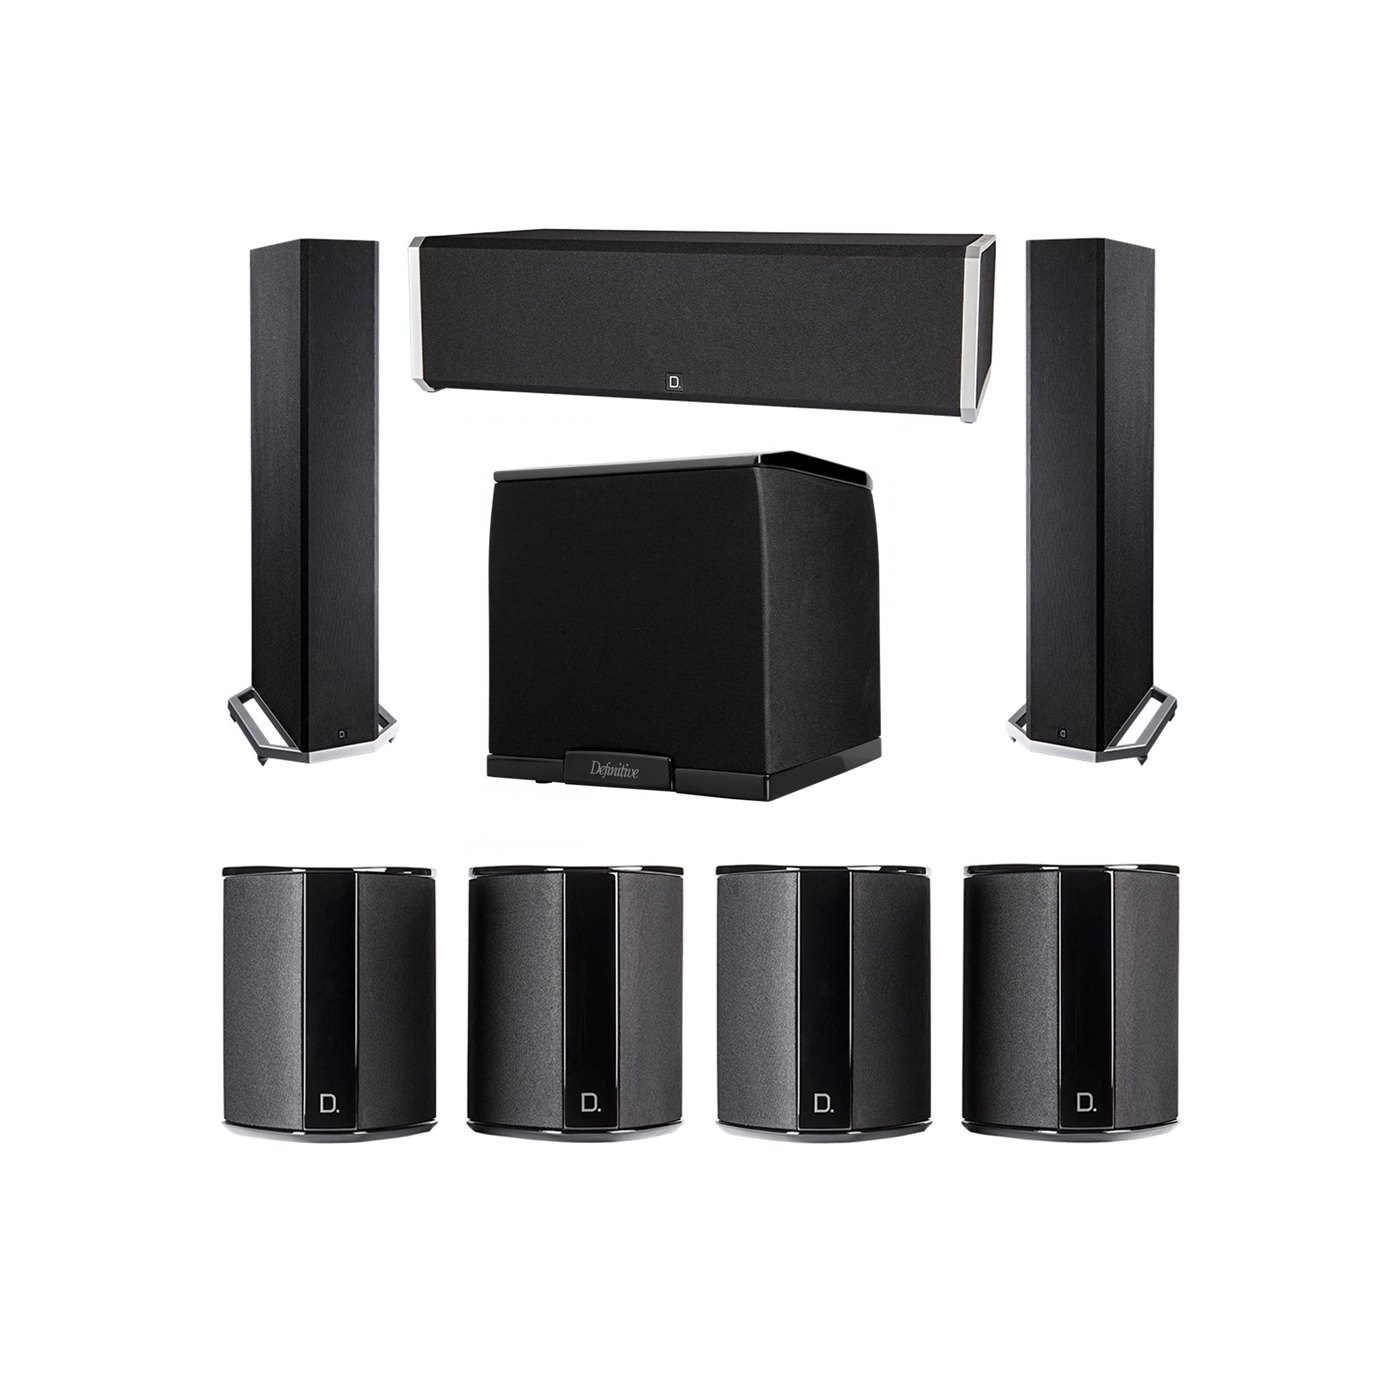 Definitive Technology 7.1 System with 2 BP9020 Tower Speakers, 1 CS9040 Center Channel Speaker, 4 SR9040 Surround Speaker, 1 Definitive Technology SuperCube 2000 Powered Subwoofer